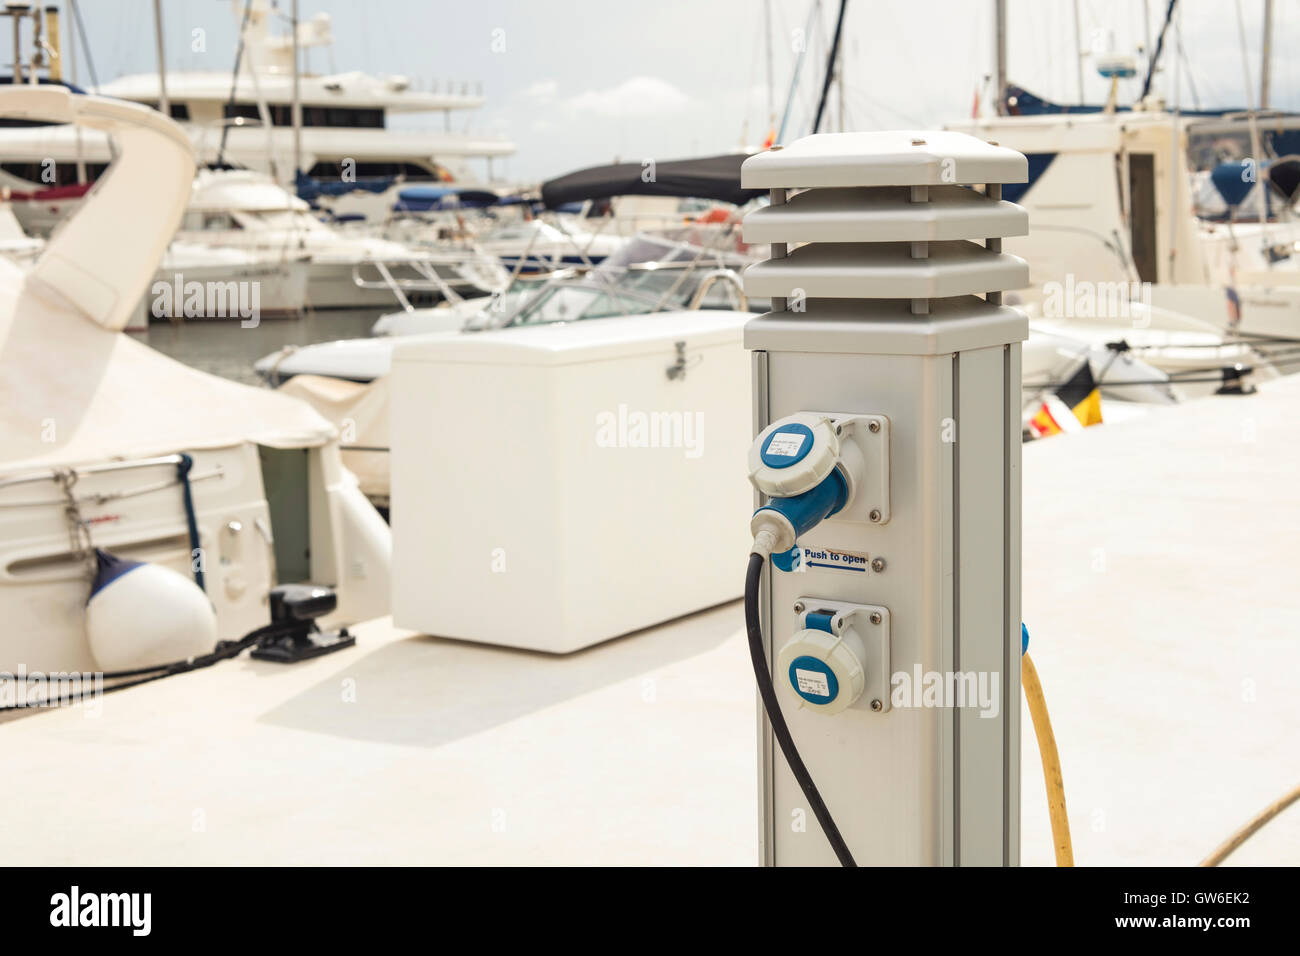 Detail of an auxiliary generator, which supplies energy to ships at harbour - Stock Image